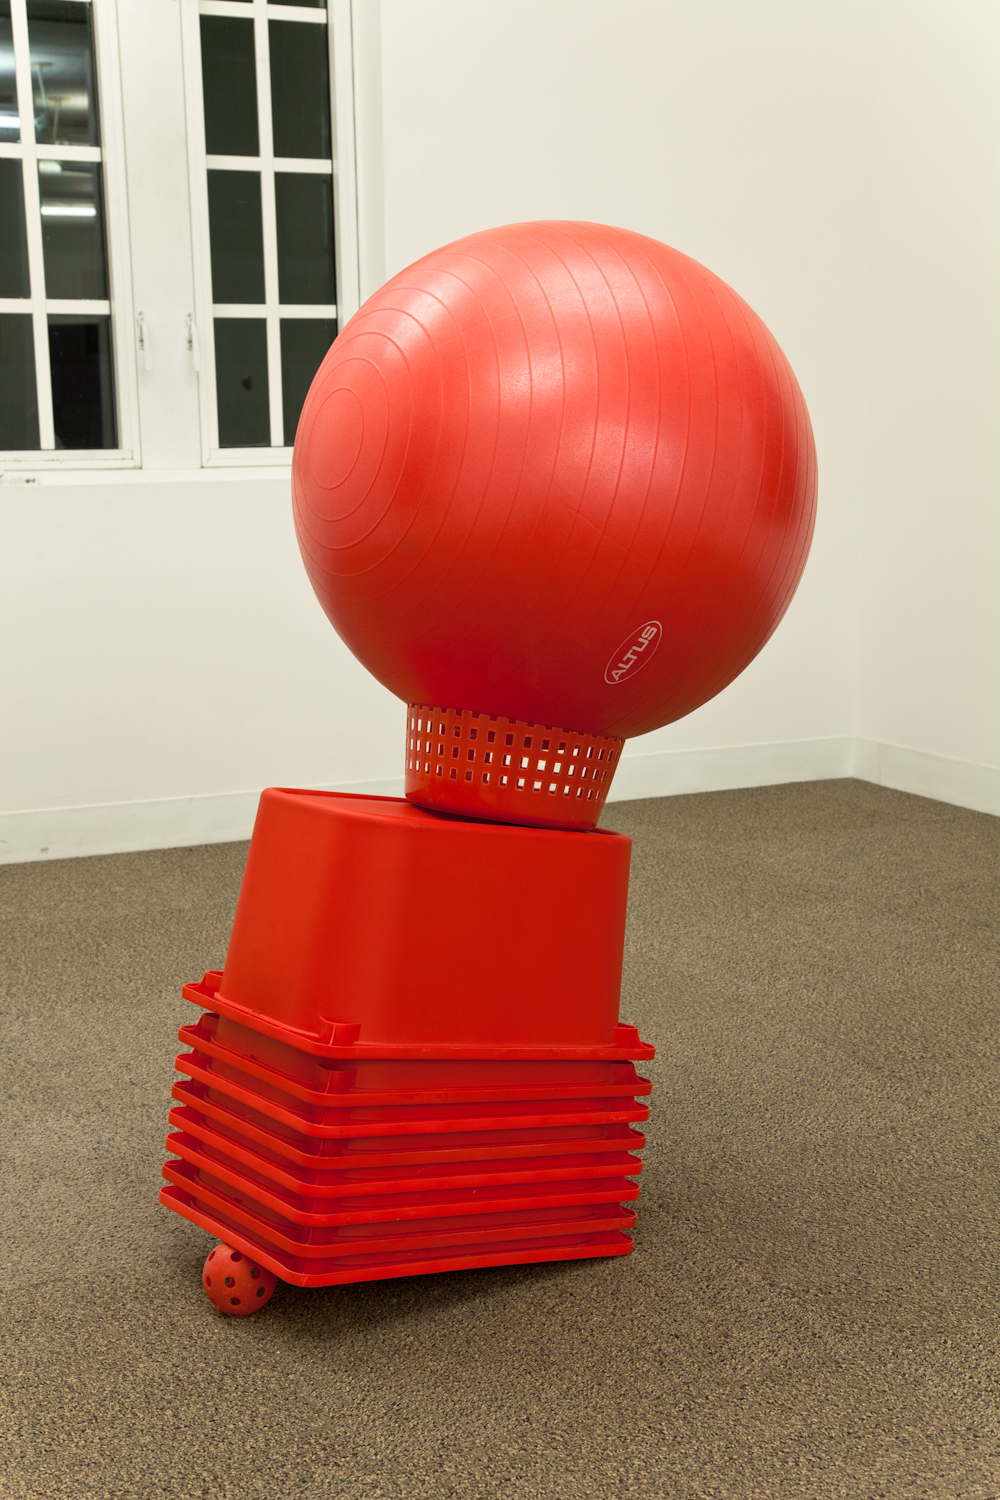 Dylan Lynch  Untitled  2012 Buckets, fitness ball, wiffle ball 53 x 33 x 23 inches